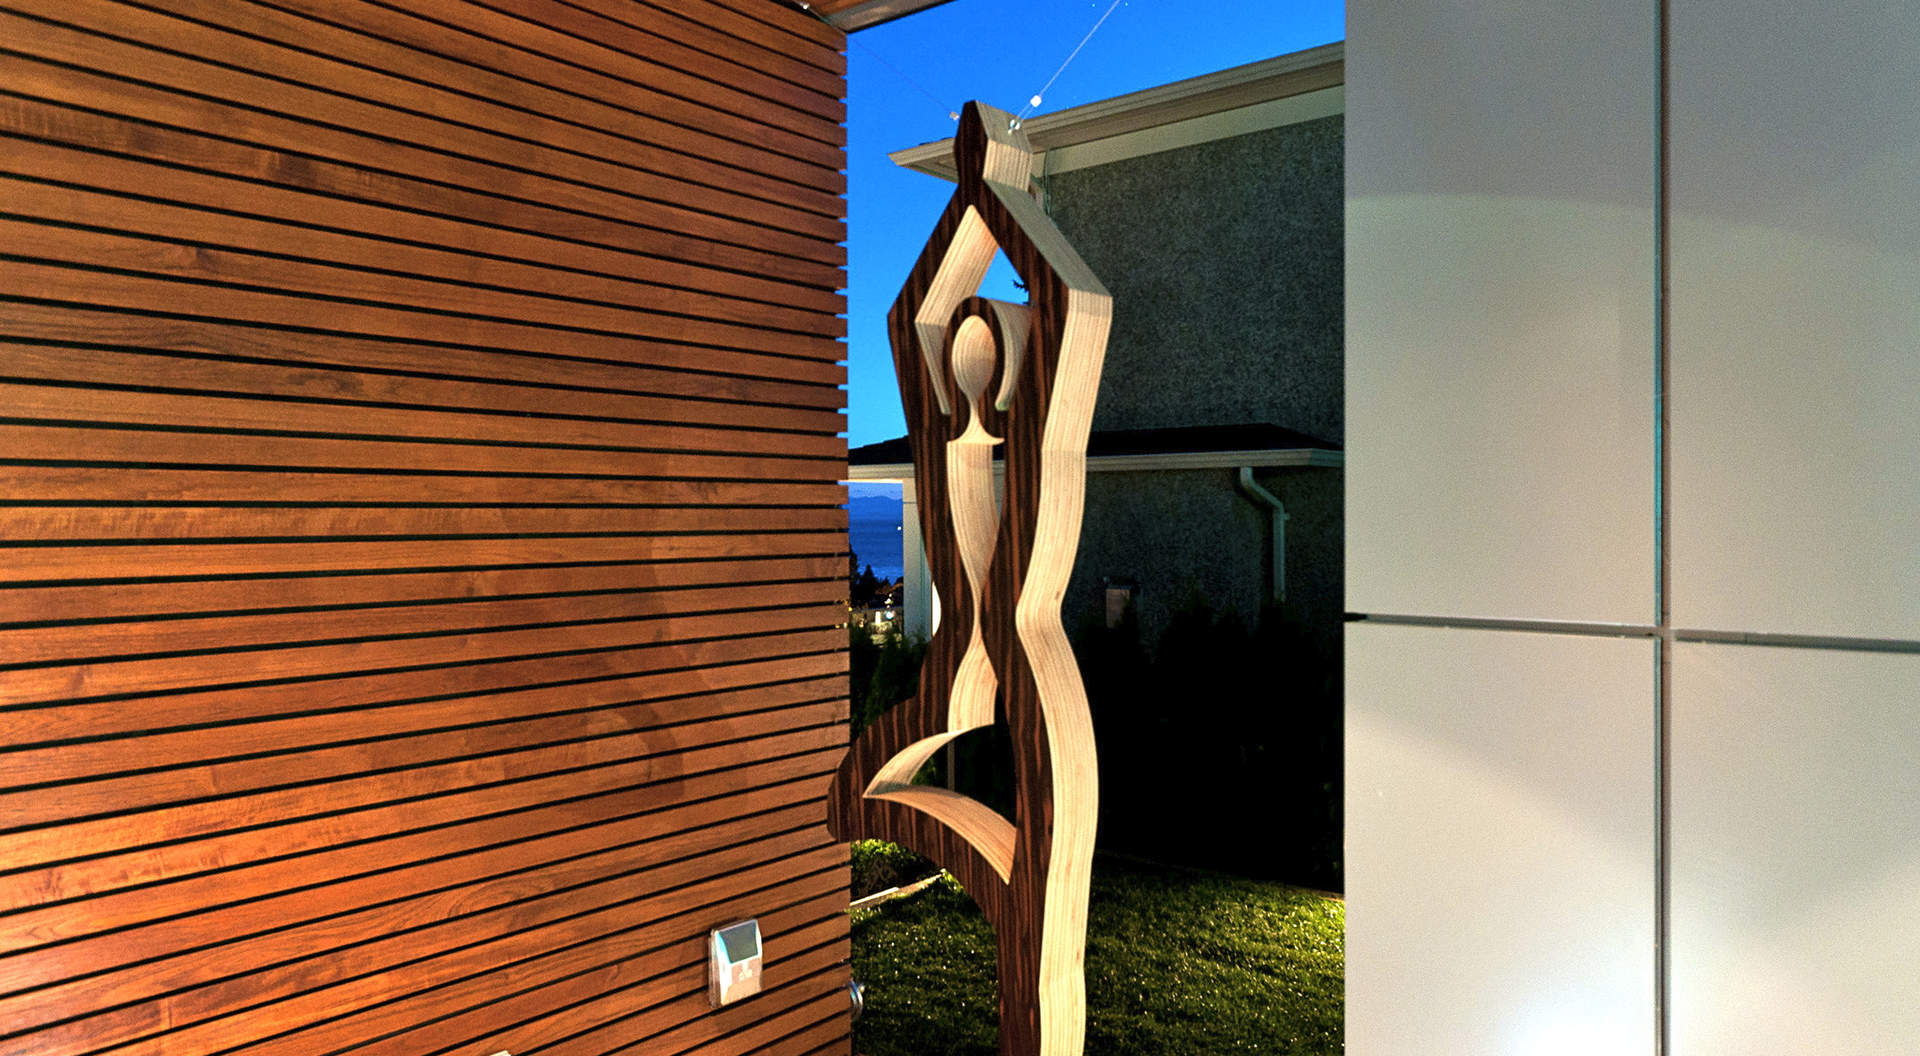 A Custom Sculpture Bringing Peace, Tranquility & Balance to Any New Owners